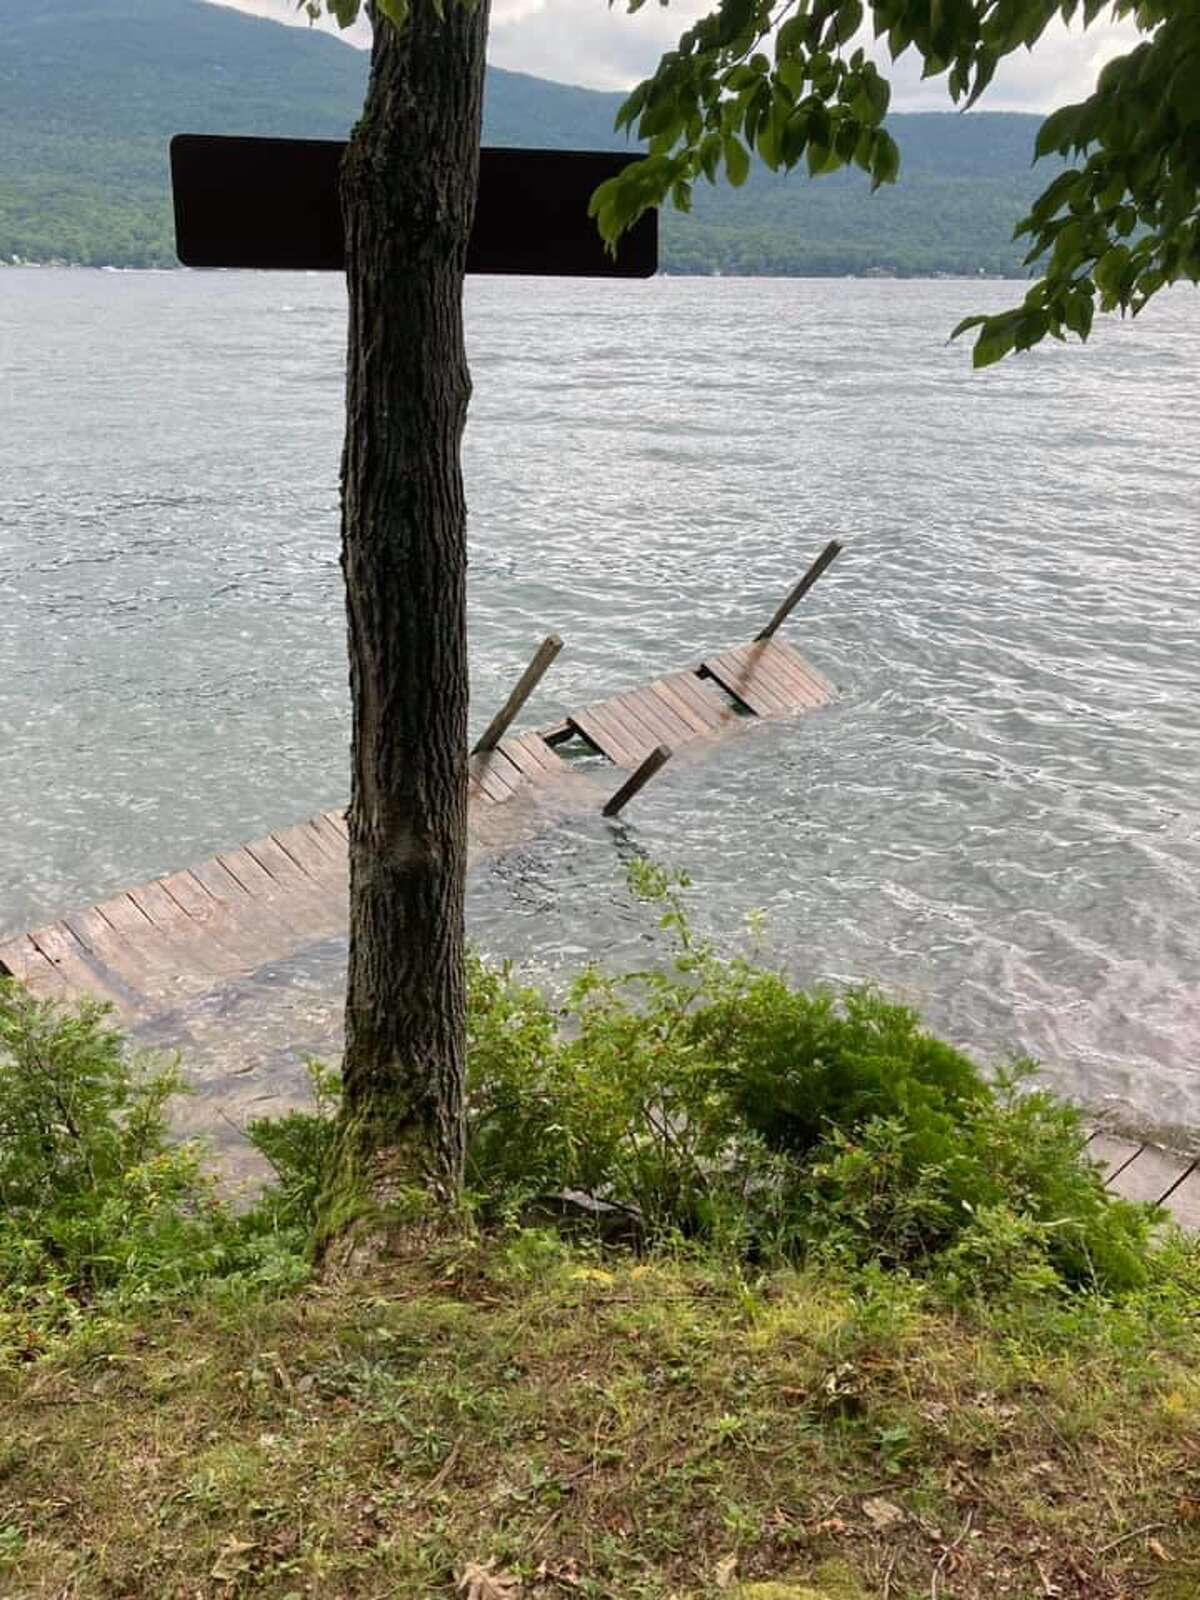 This dock on Long Island in Lake George flipped after a Trump regatta raced by a campsite.